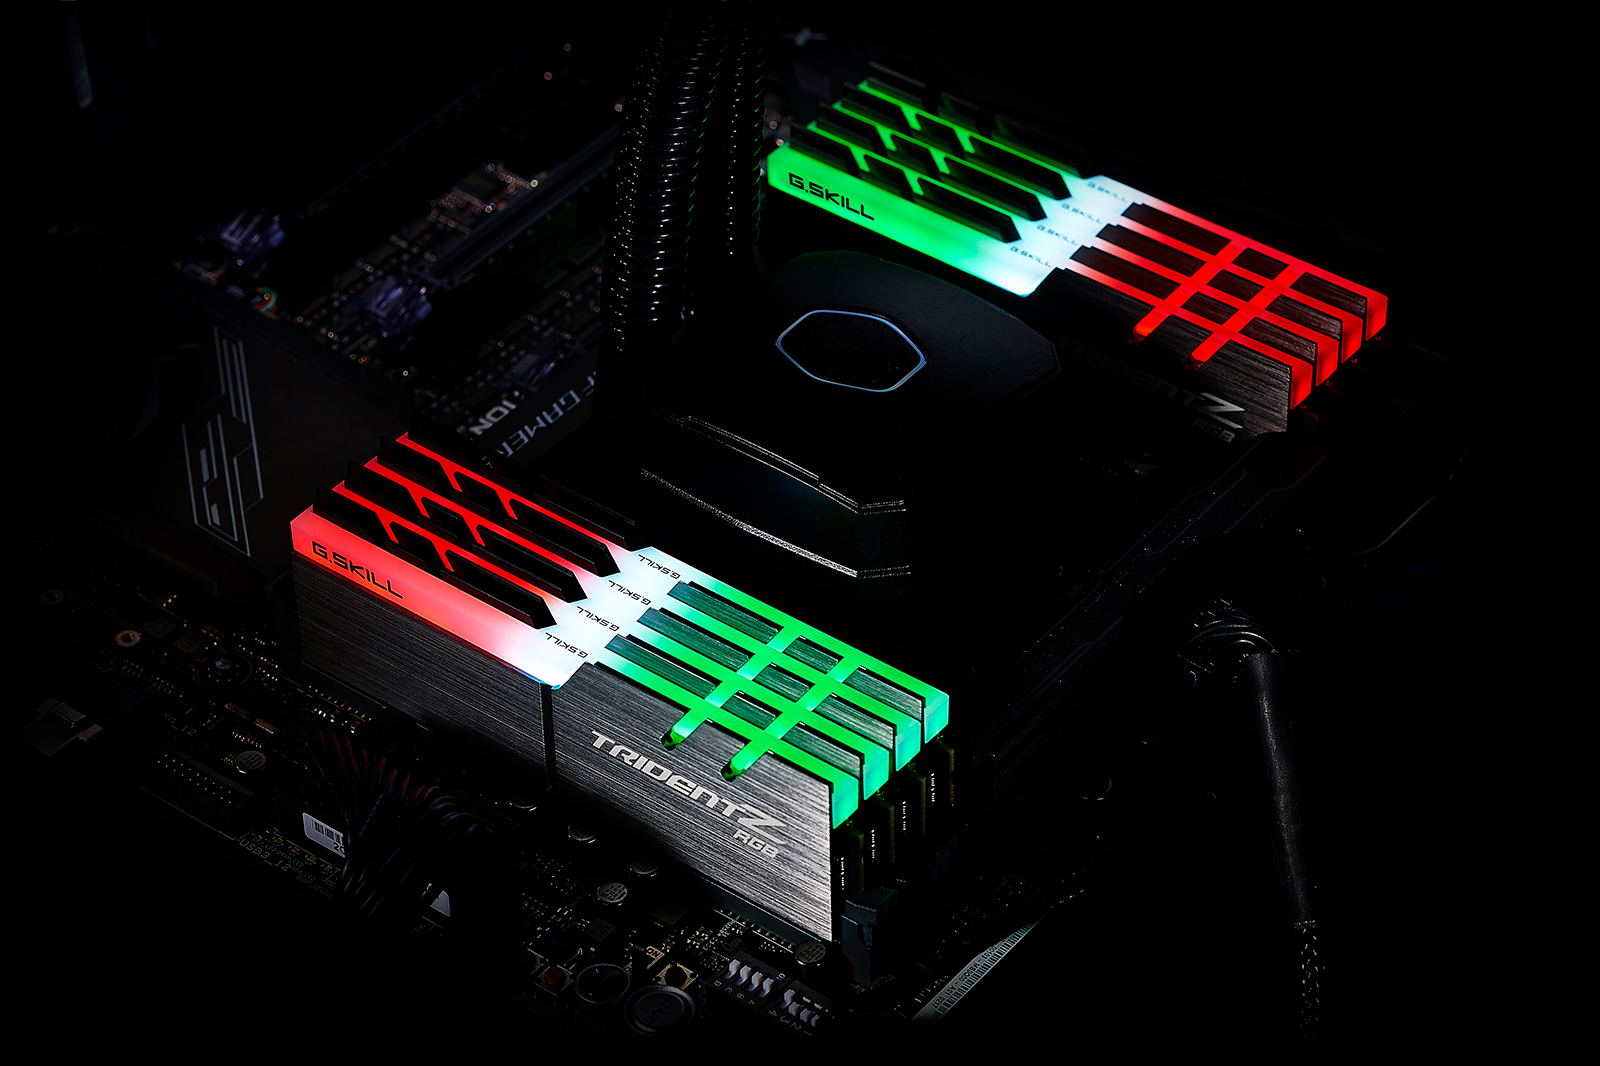 Two Sets of Four G.Skill TridentZ RGB Memory Modules Installed on a Motherboard